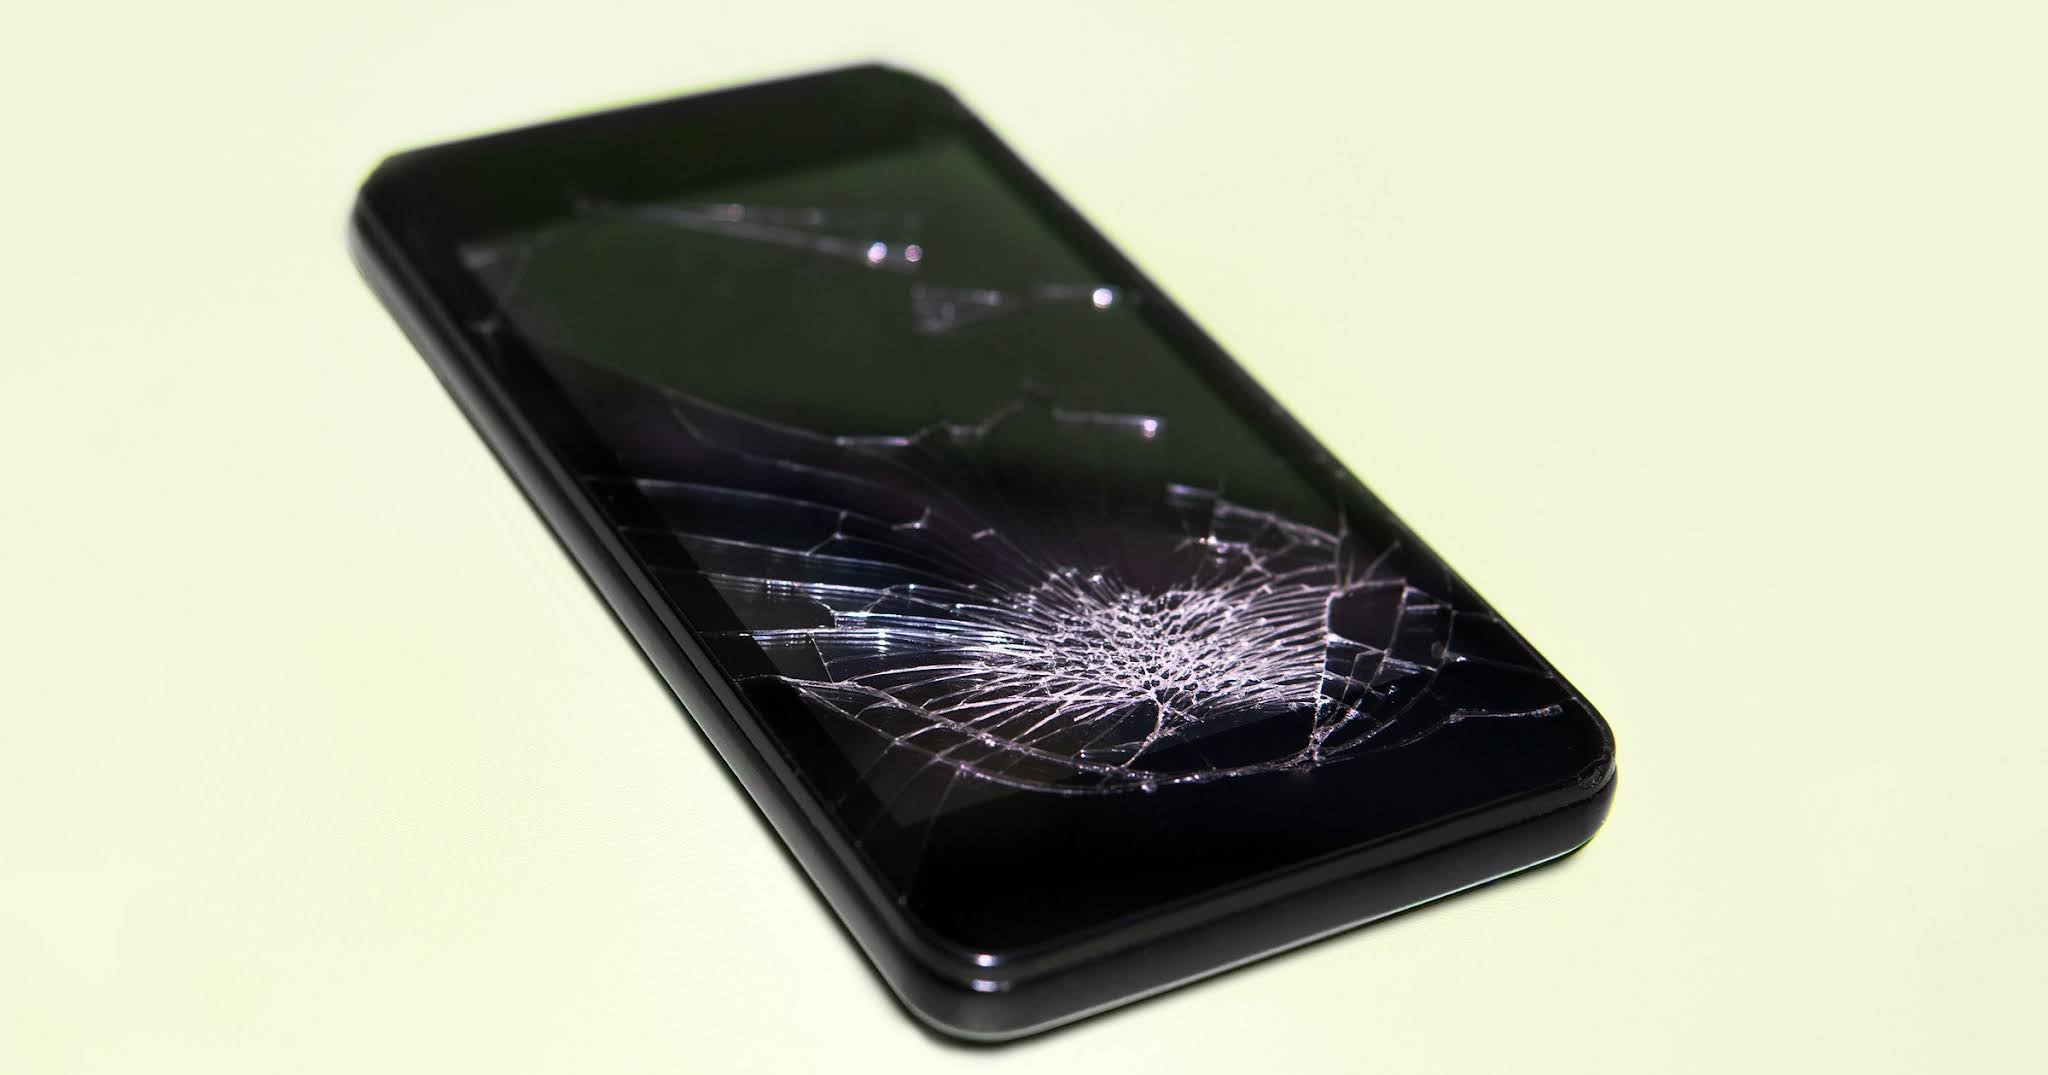 Young girl killed her boyfriend by hitting his mobile phone